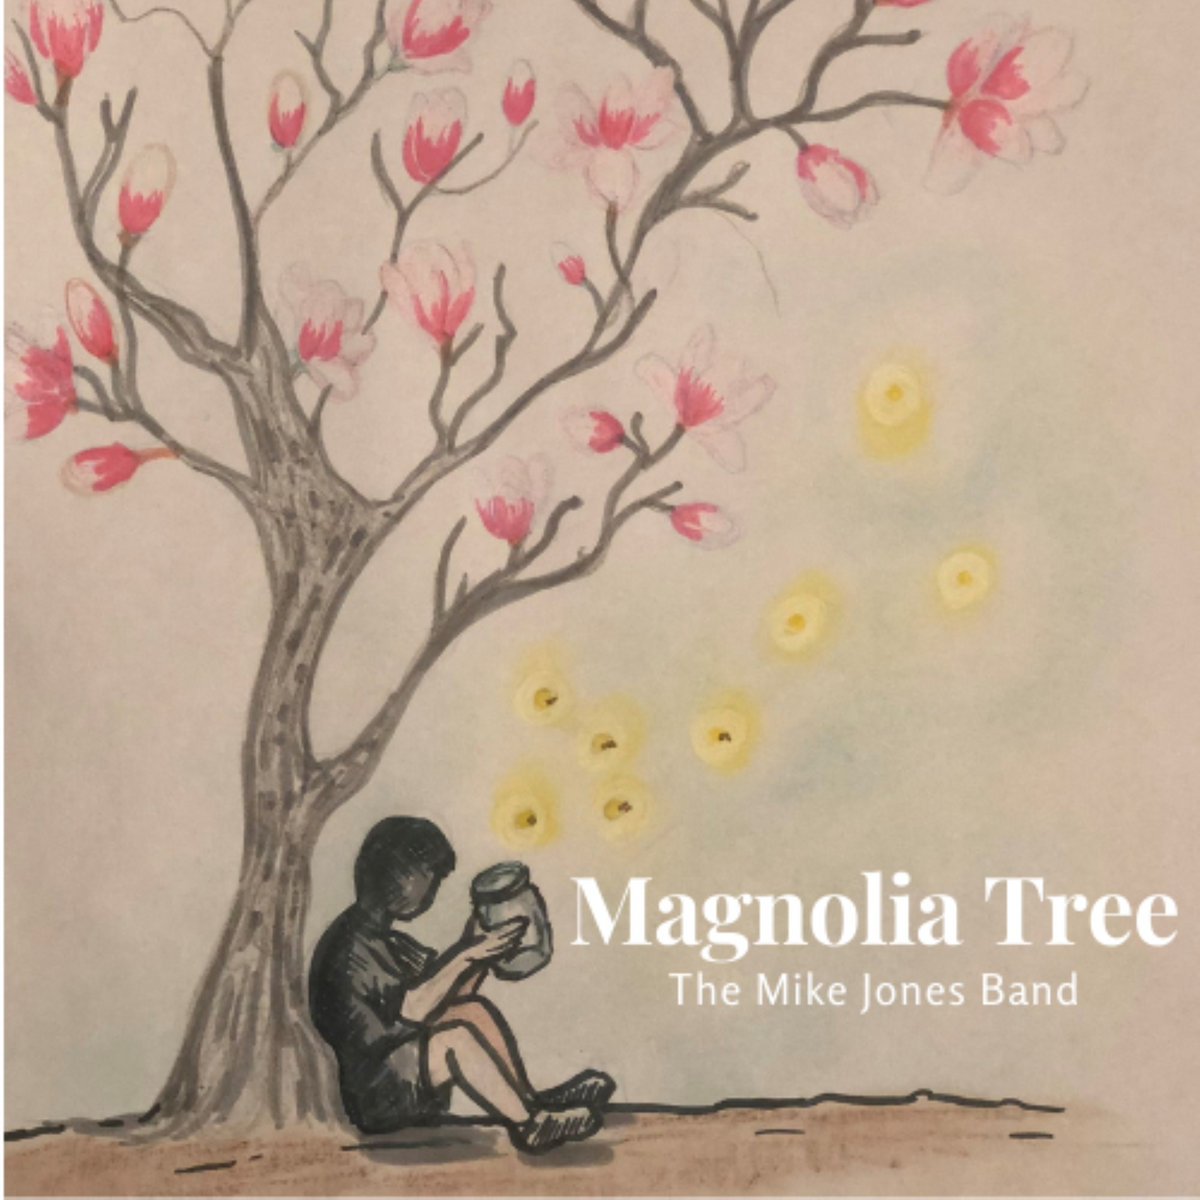 Magnolia Tree by The Mike Jones Band